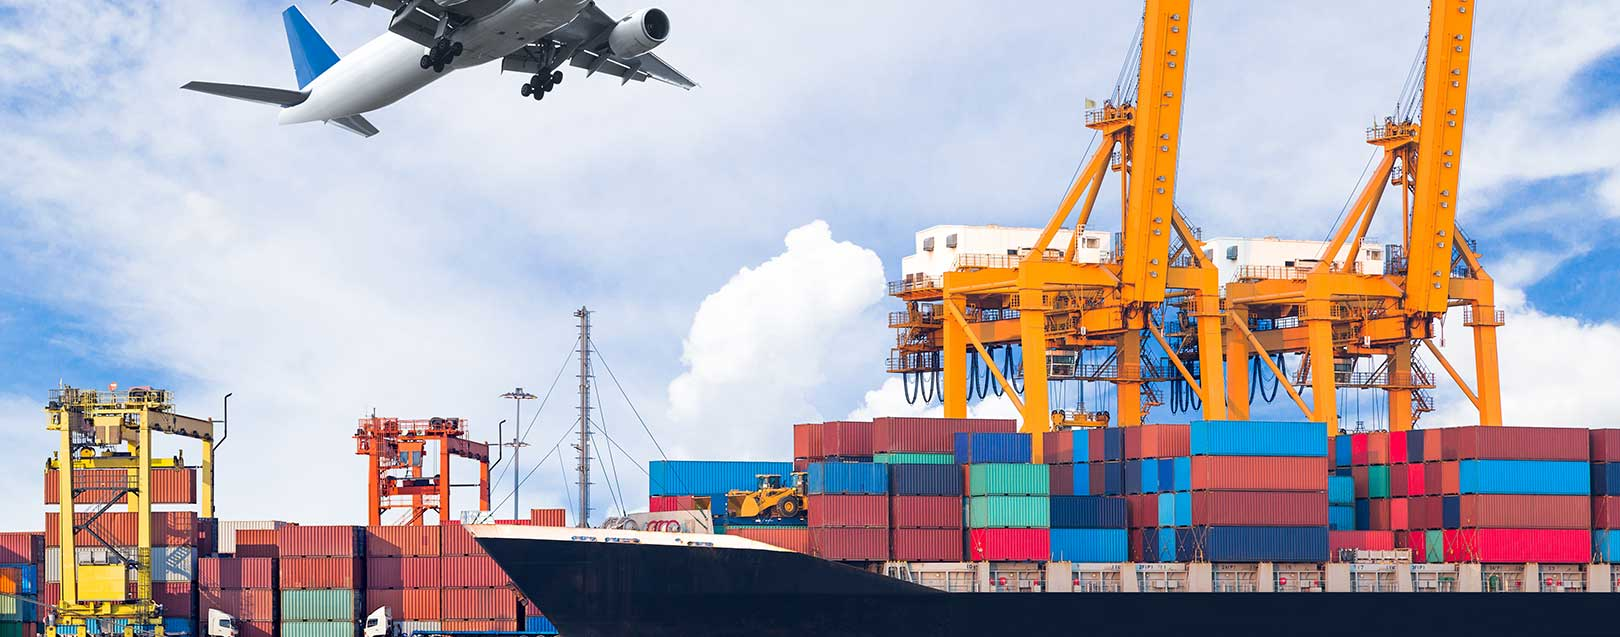 Exports rise 4.62% to $ 22.88 bn in Sept, imports fall 2.54%